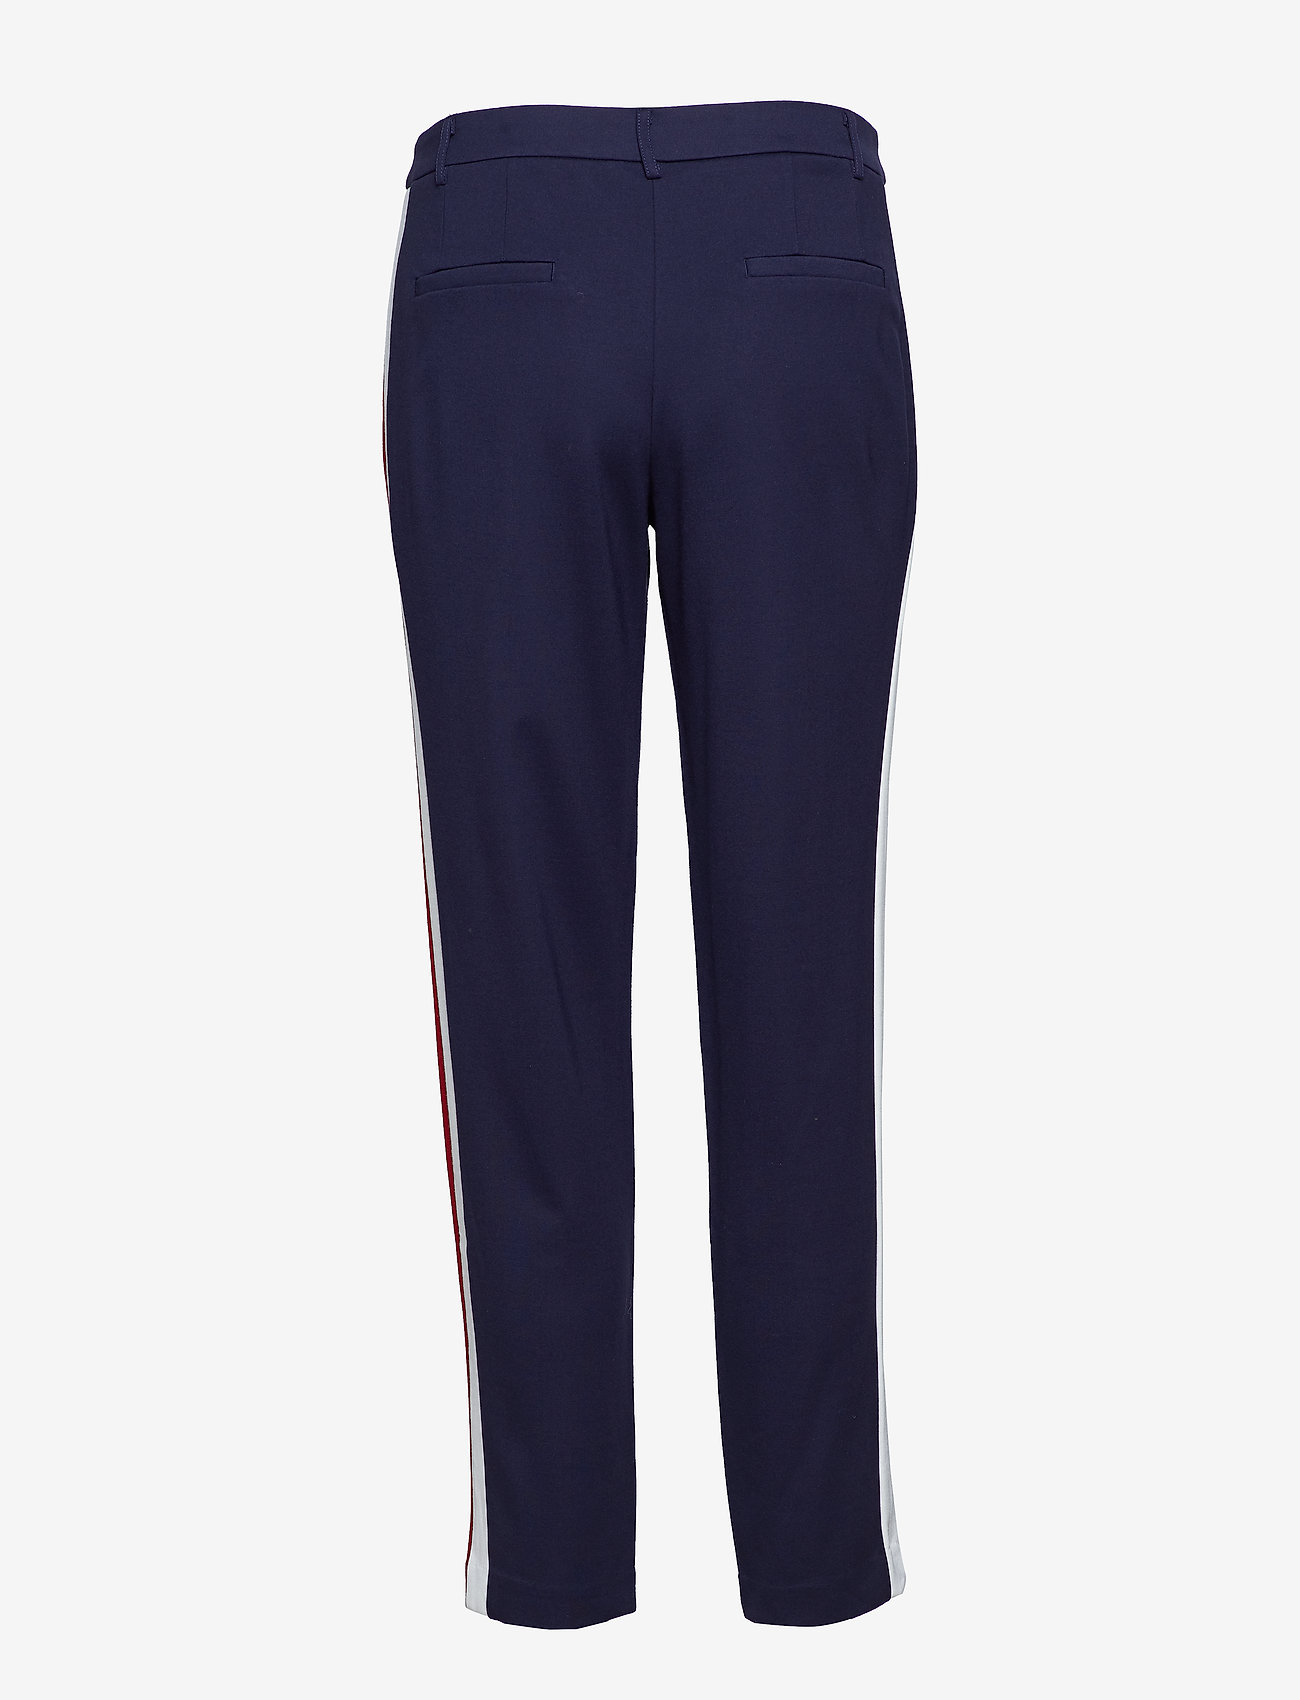 Pants Woven (Navy) - Esprit Casual Ic48oL